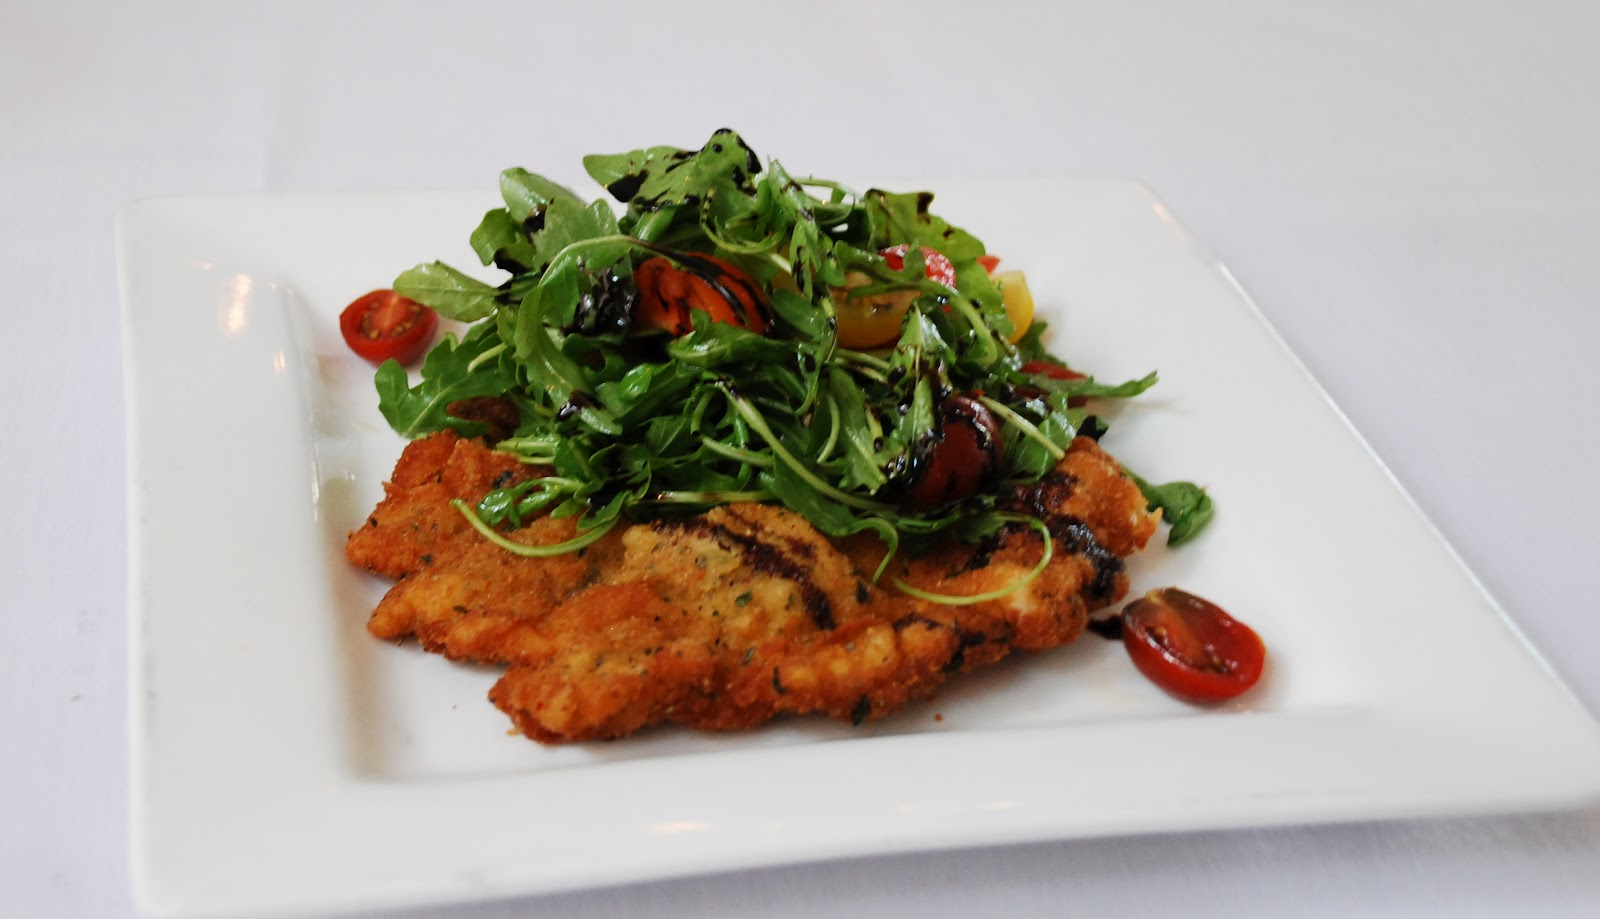 Chicken Milanese with Arugula Salad, Tomatoes and Balsamic Reduction